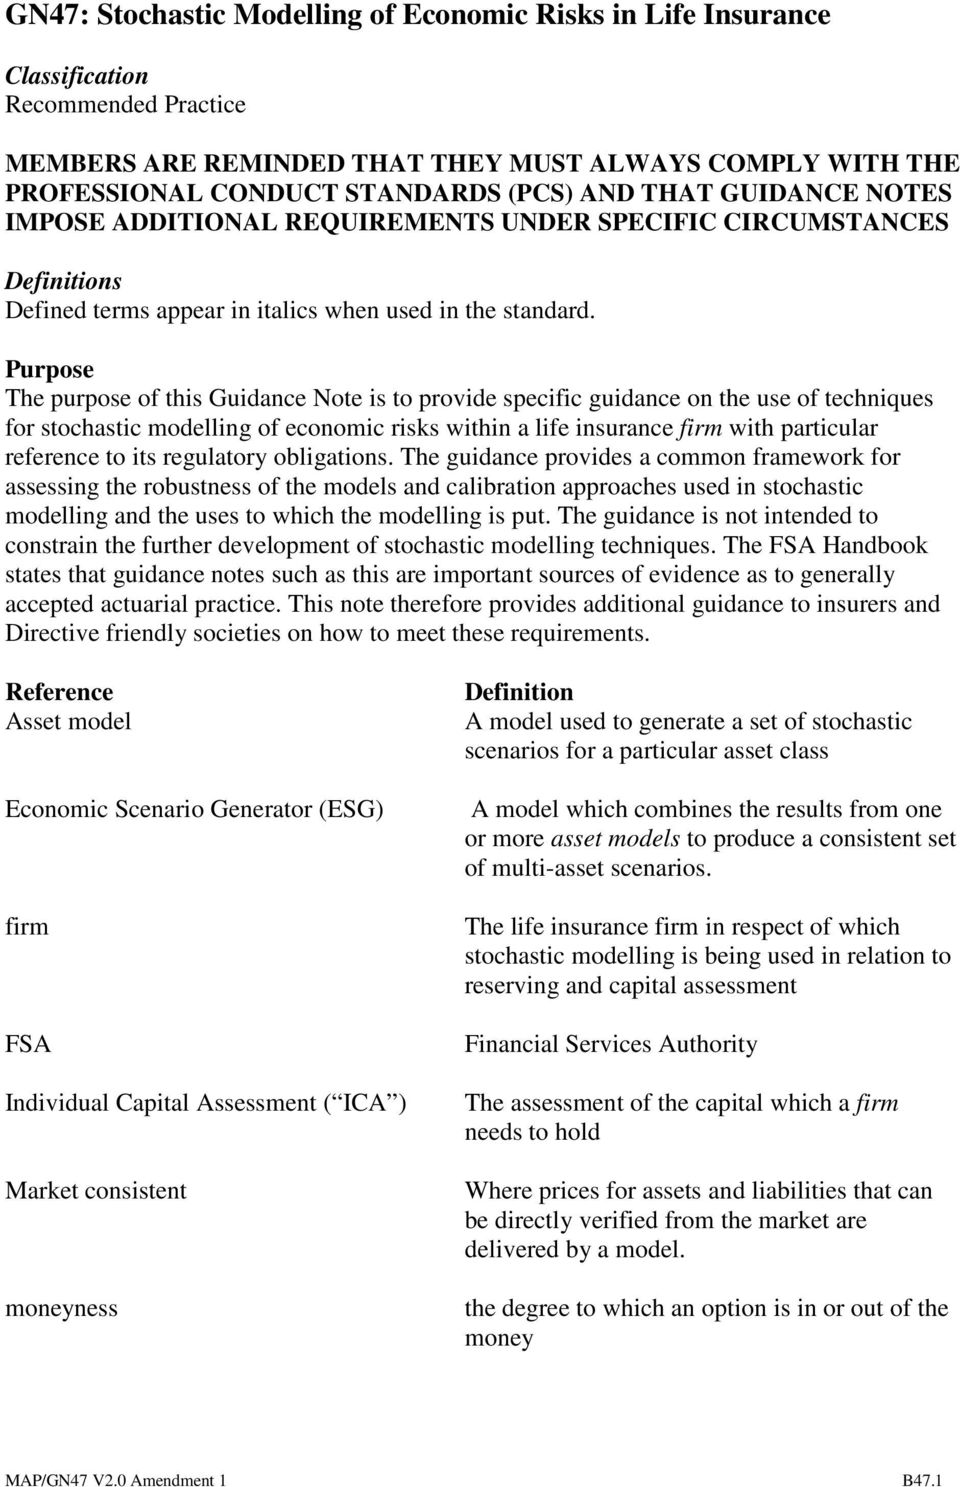 Purpose The purpose of this Guidance Note is to provide specific guidance on the use of techniques for stochastic modelling of economic risks within a life insurance firm with particular reference to